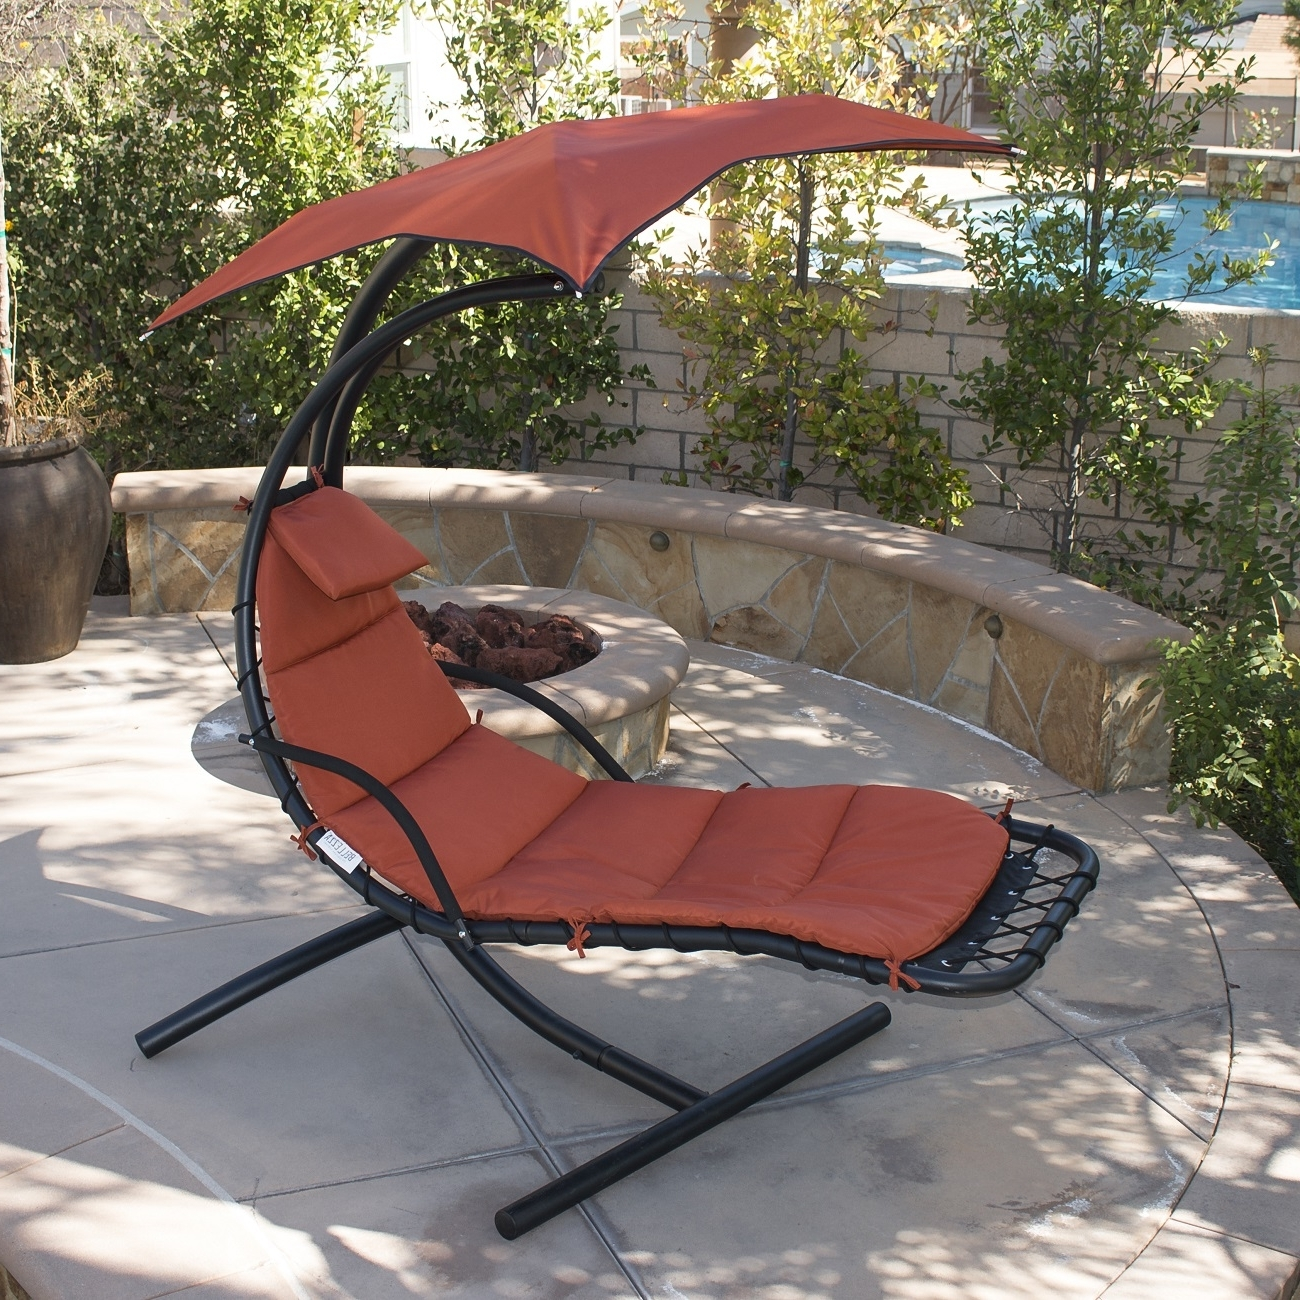 Widely Used Hanging Chaise Lounge Chair Hammock Swing Canopy Glider Outdoor Inside Chaise Lounge Swing Chairs (View 5 of 15)